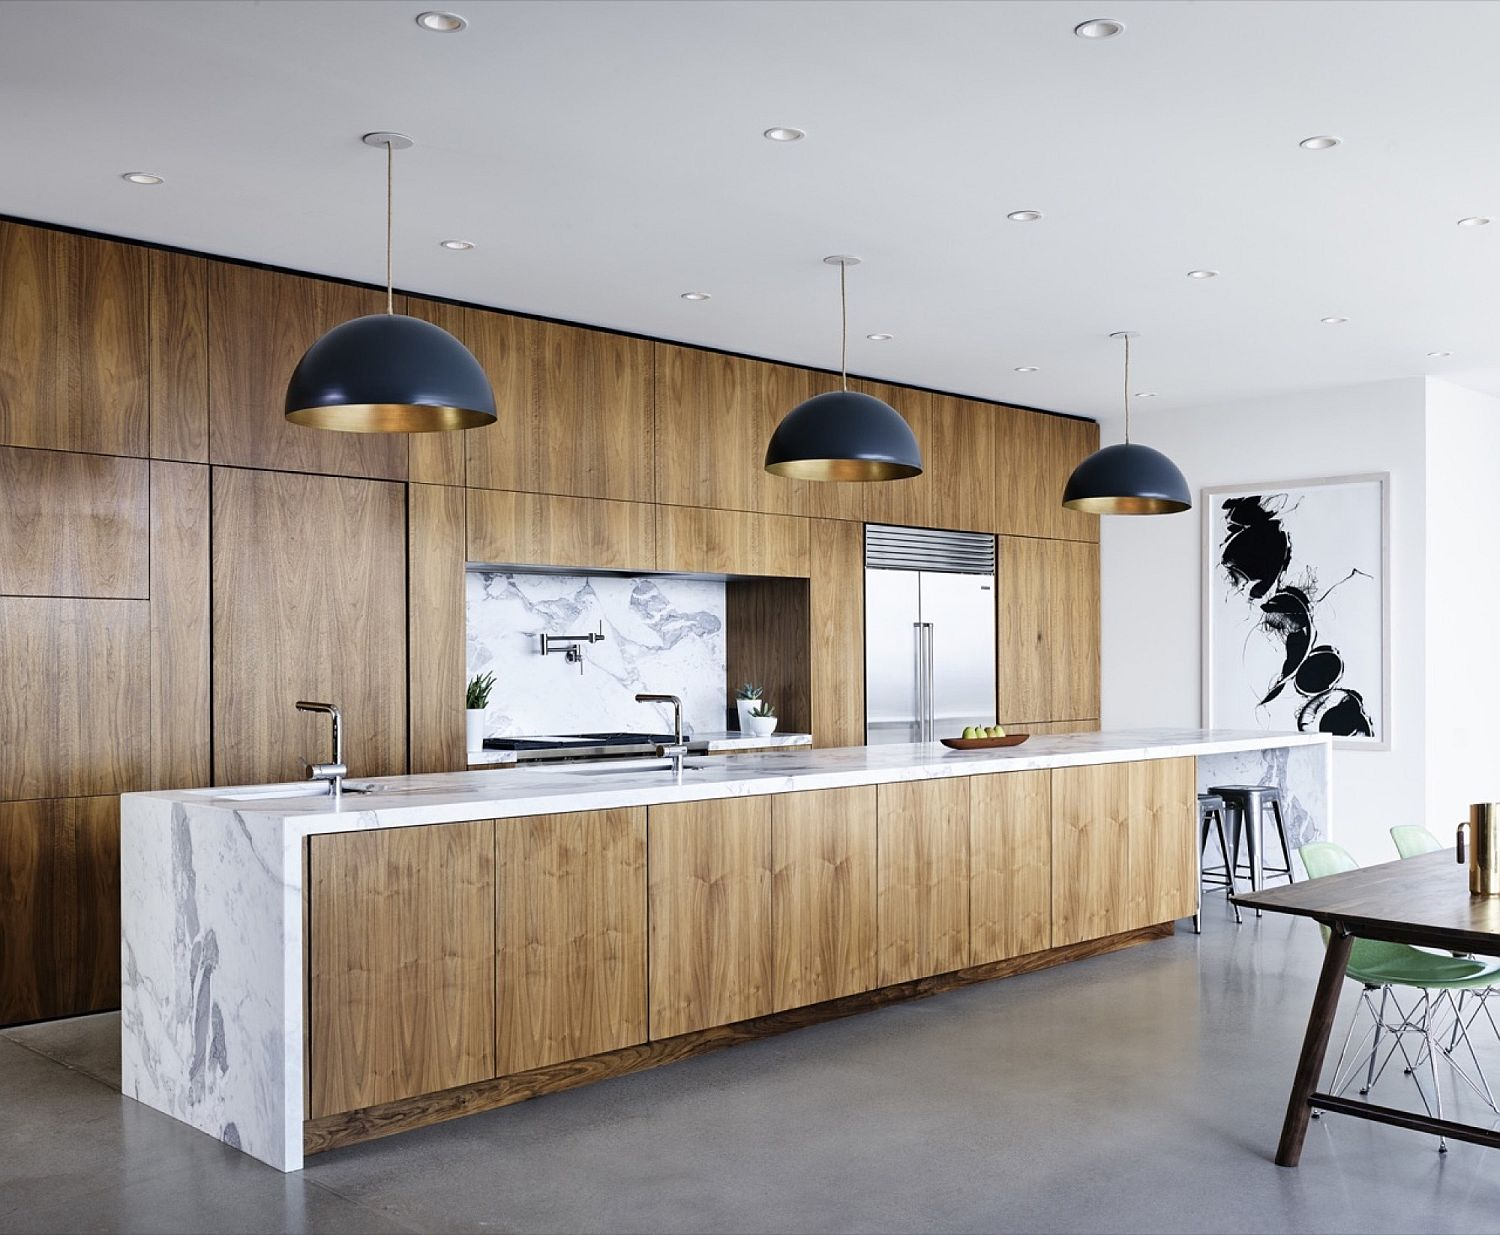 Kitchen island in wood with marble countertop and dark pendants above